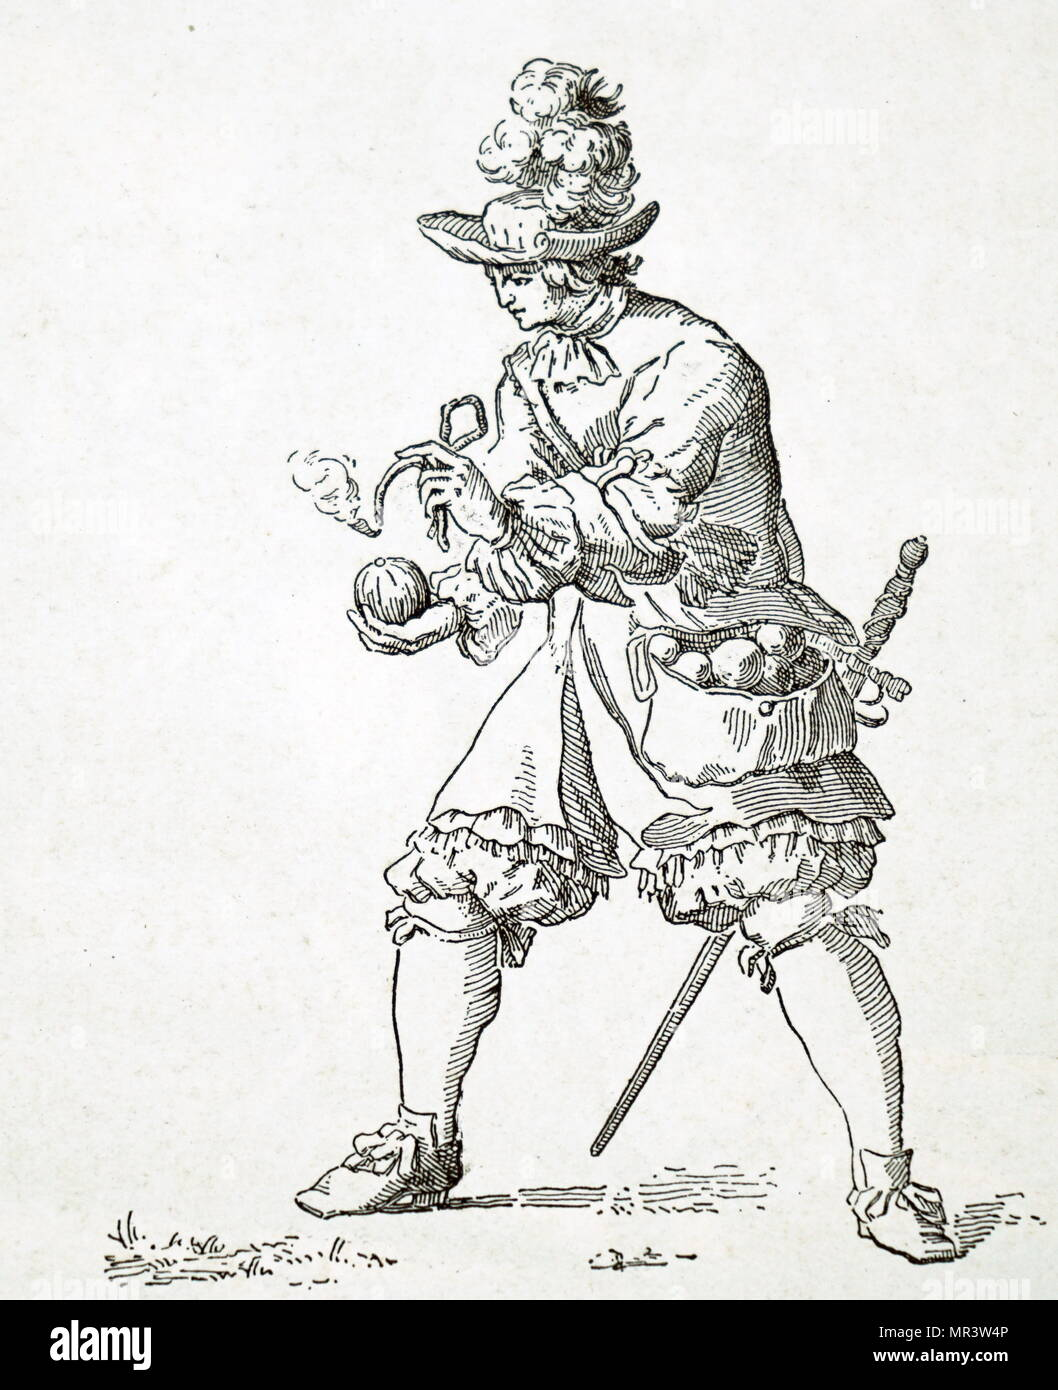 Illustration depicting a French grenadier lighting the fuse of a